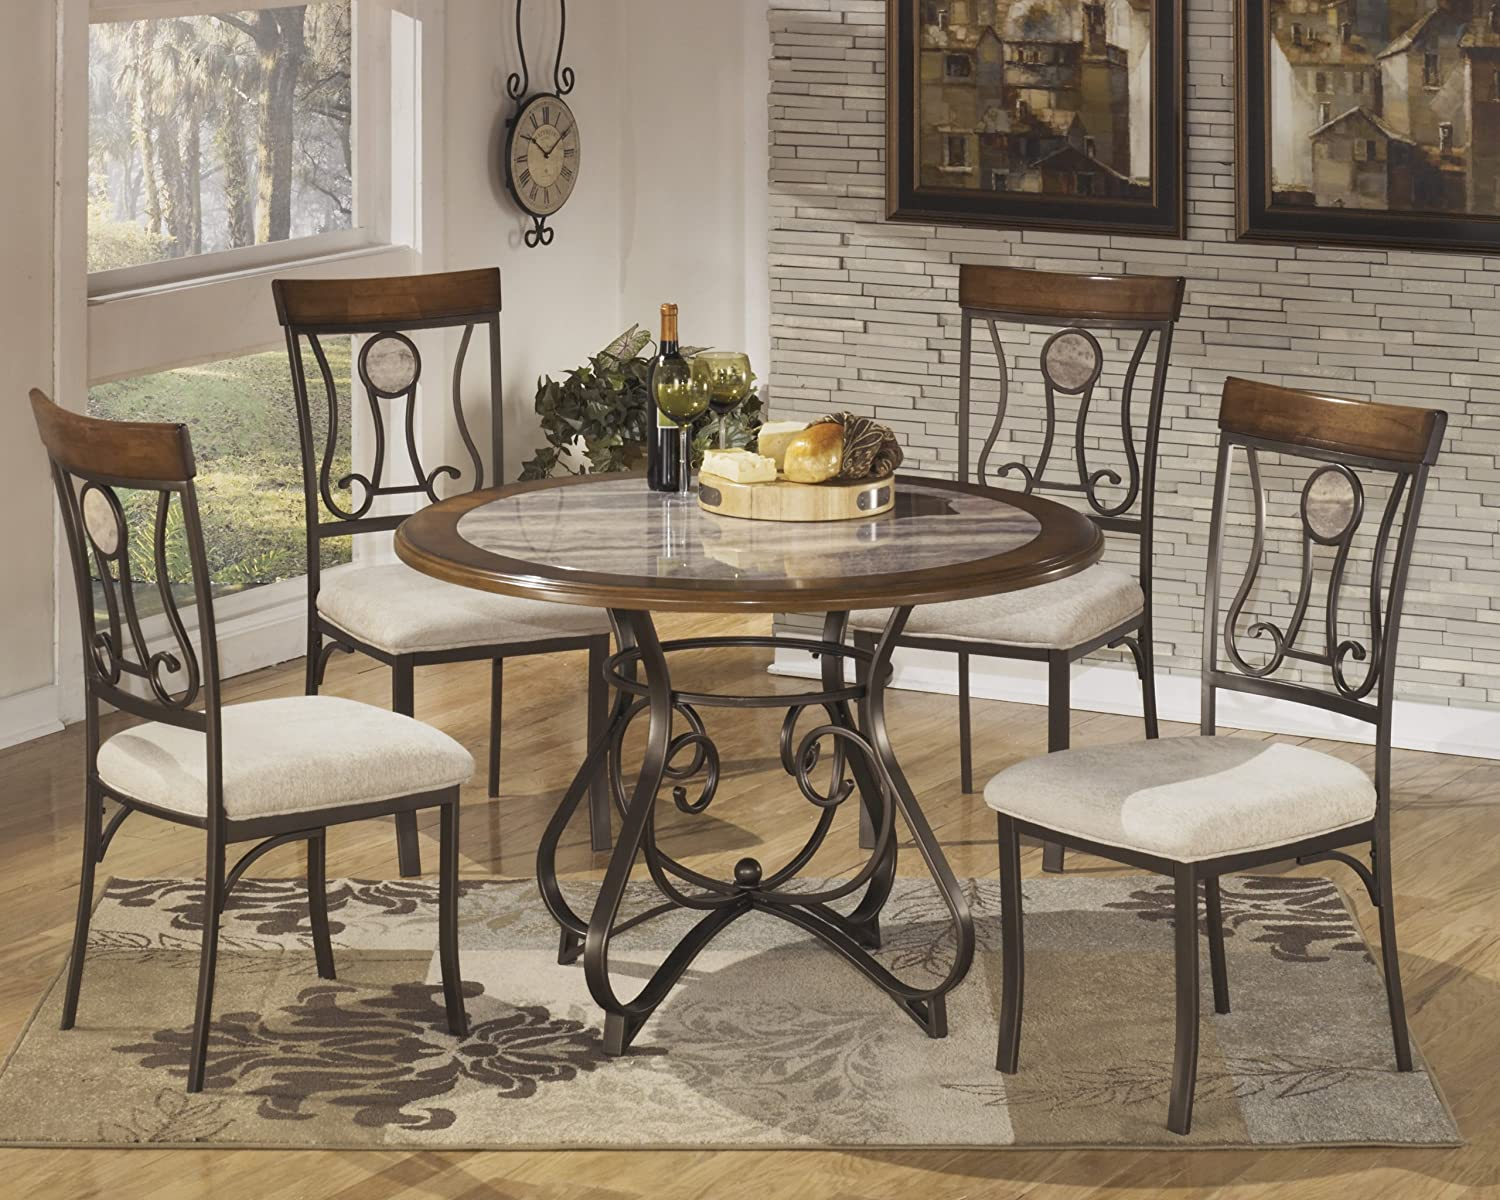 amazoncom signature design by ashley d31415b hopstand collection dining room table base only brown tables